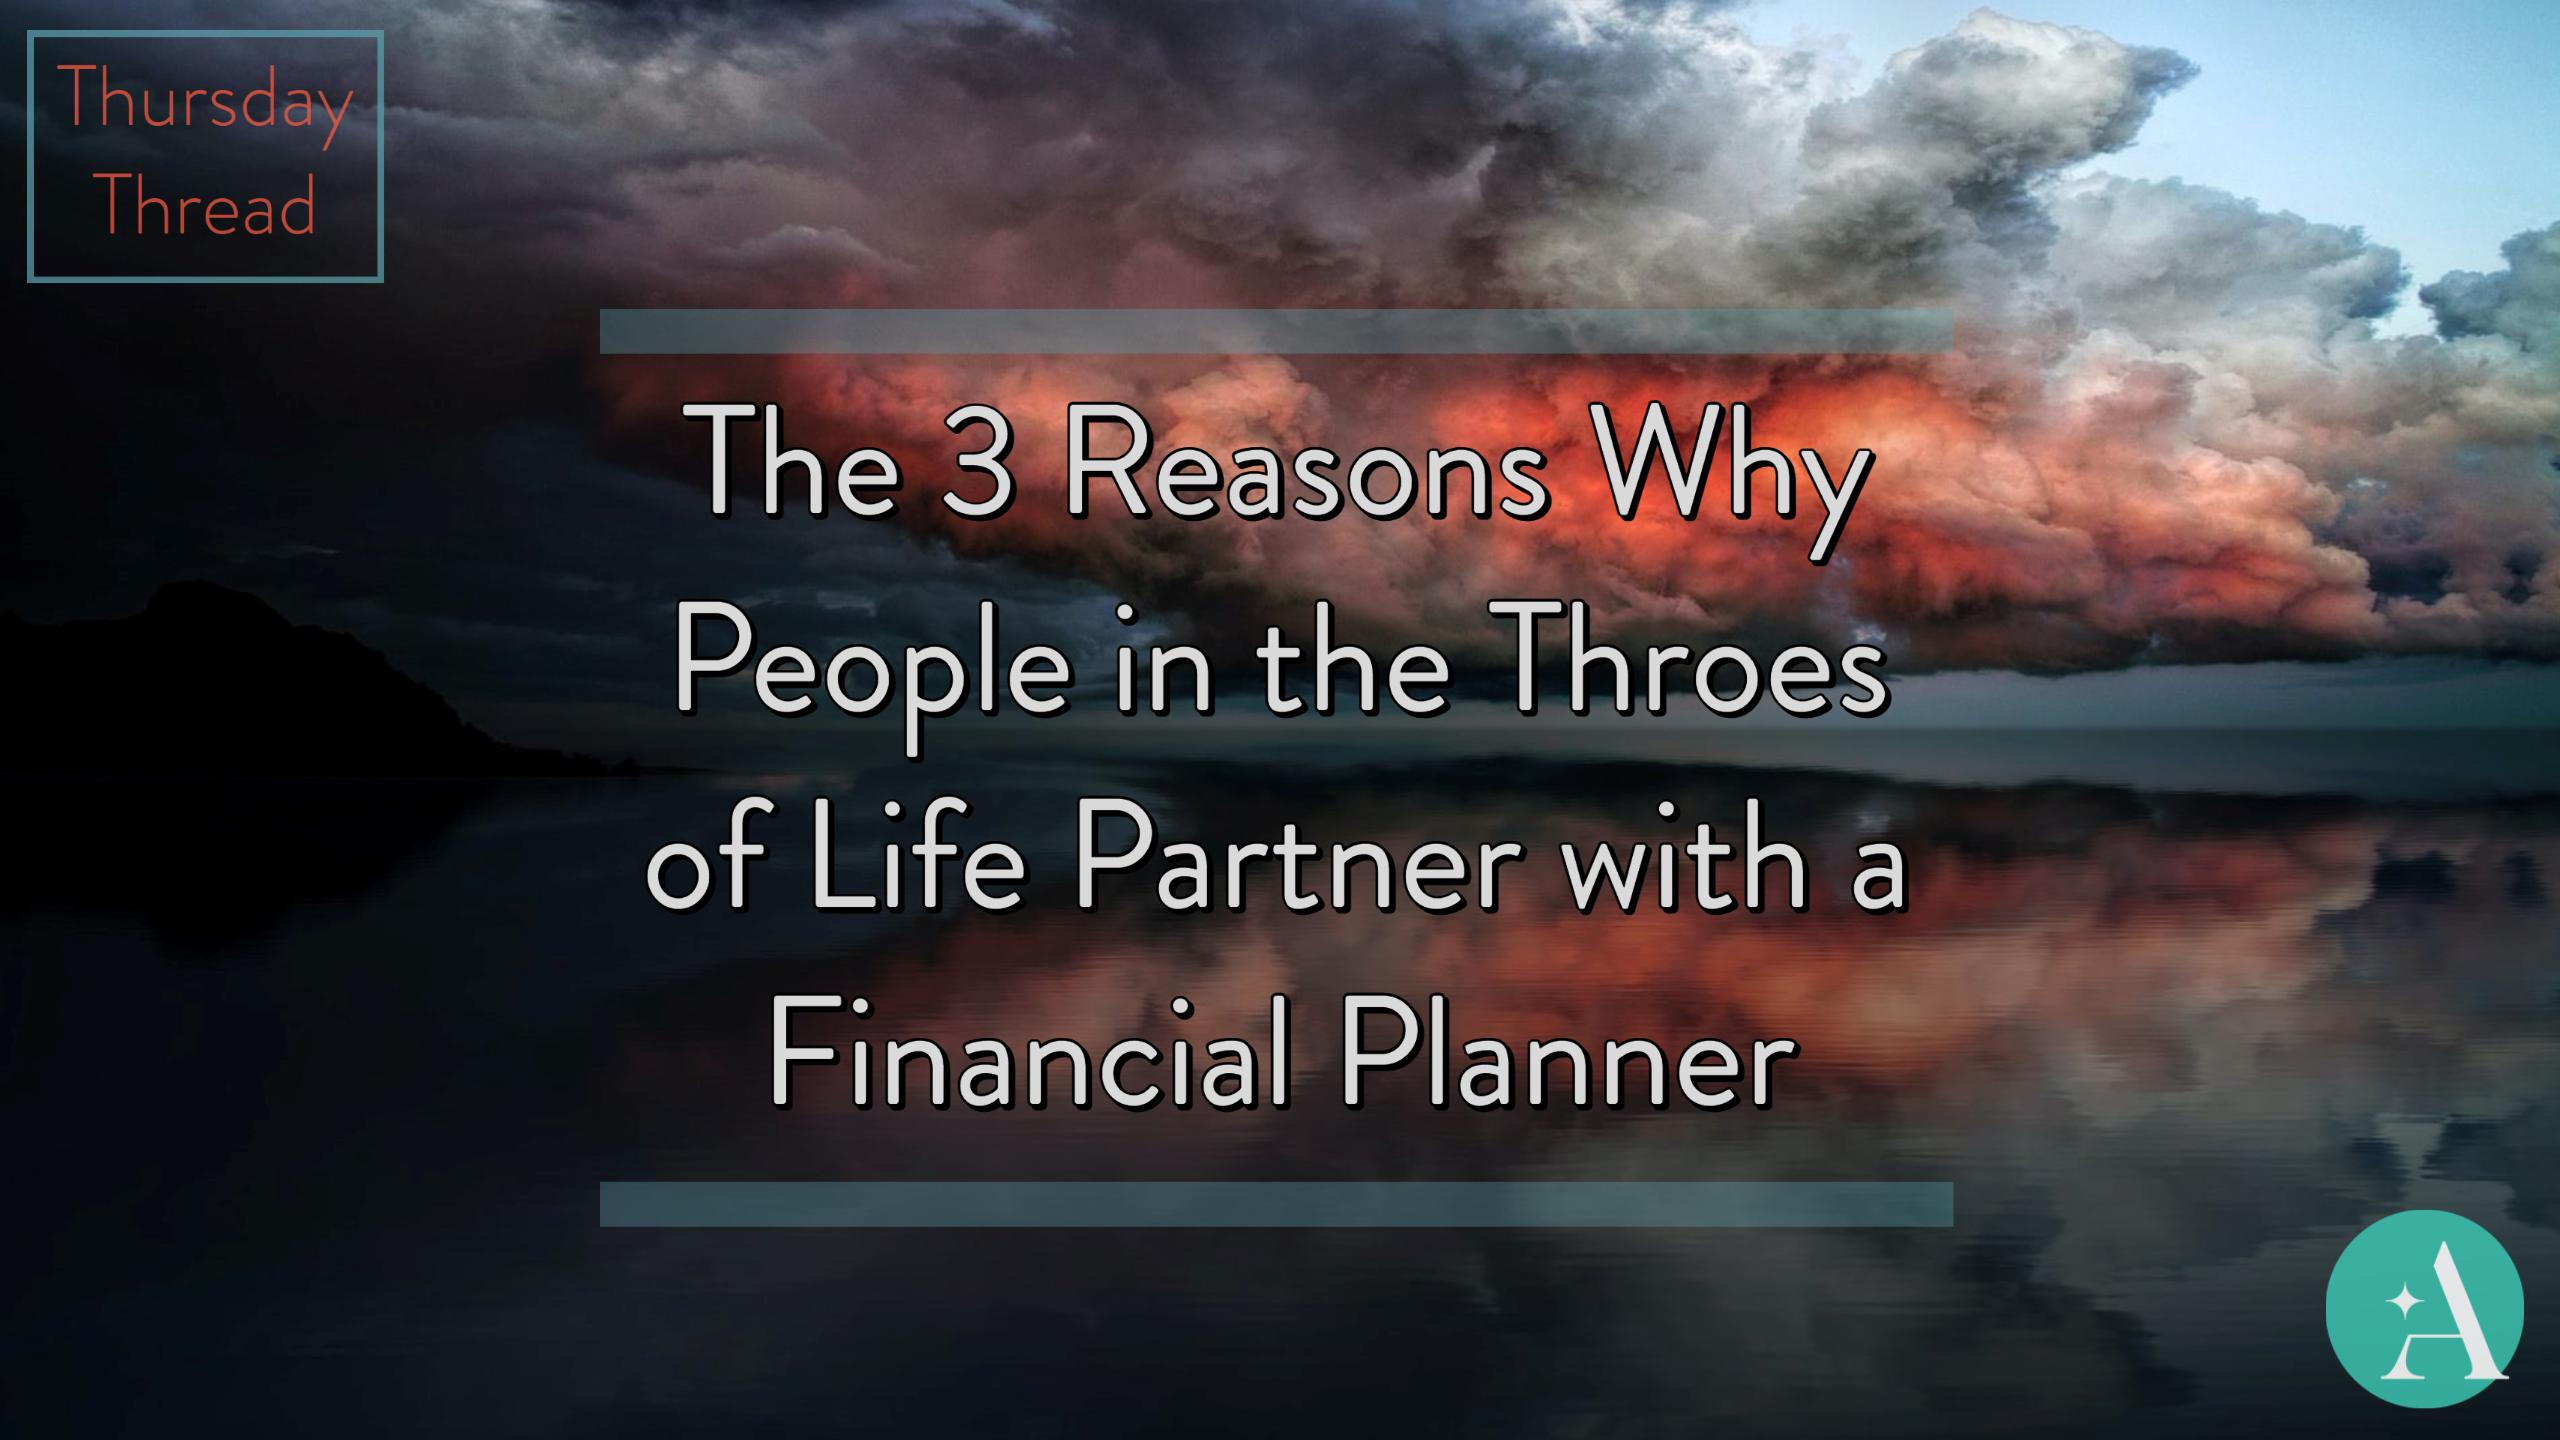 Thursday Thread: The 3 Reasons Why People in the Throes of Life Partner with a Financial Planner Thumbnail